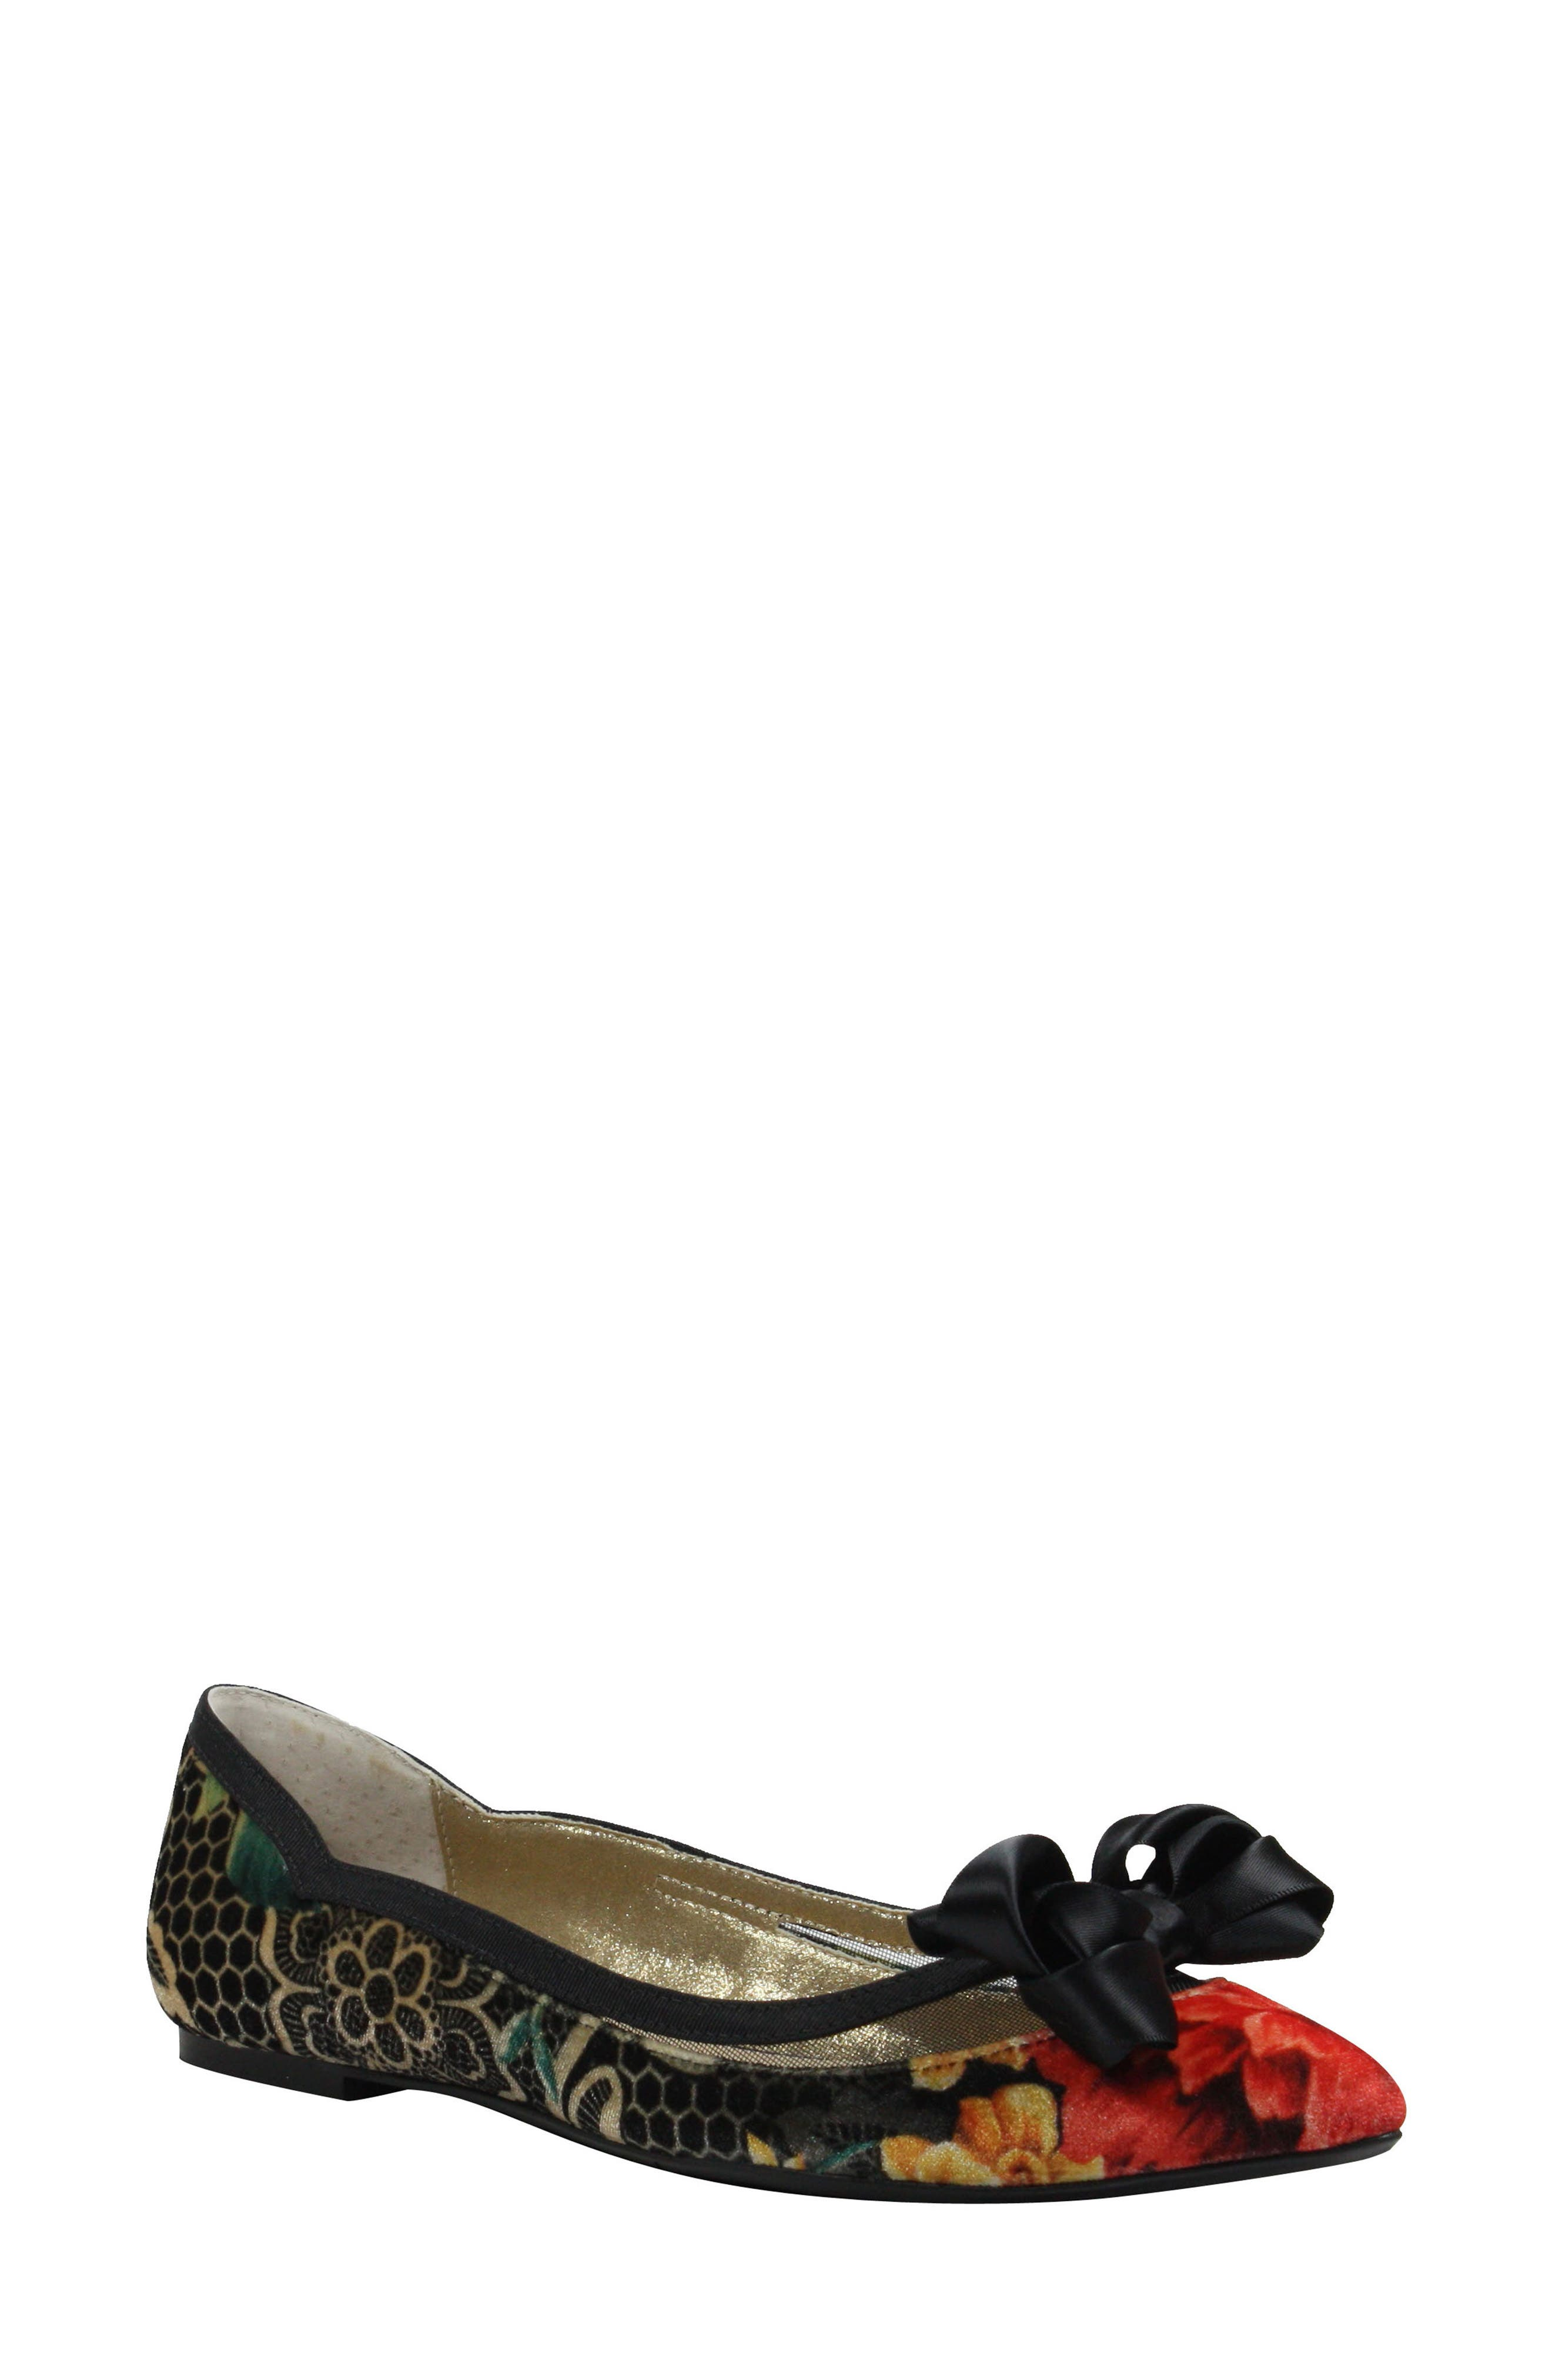 Allitson Bow Flat,                         Main,                         color, Black/ Taupe/ Coral